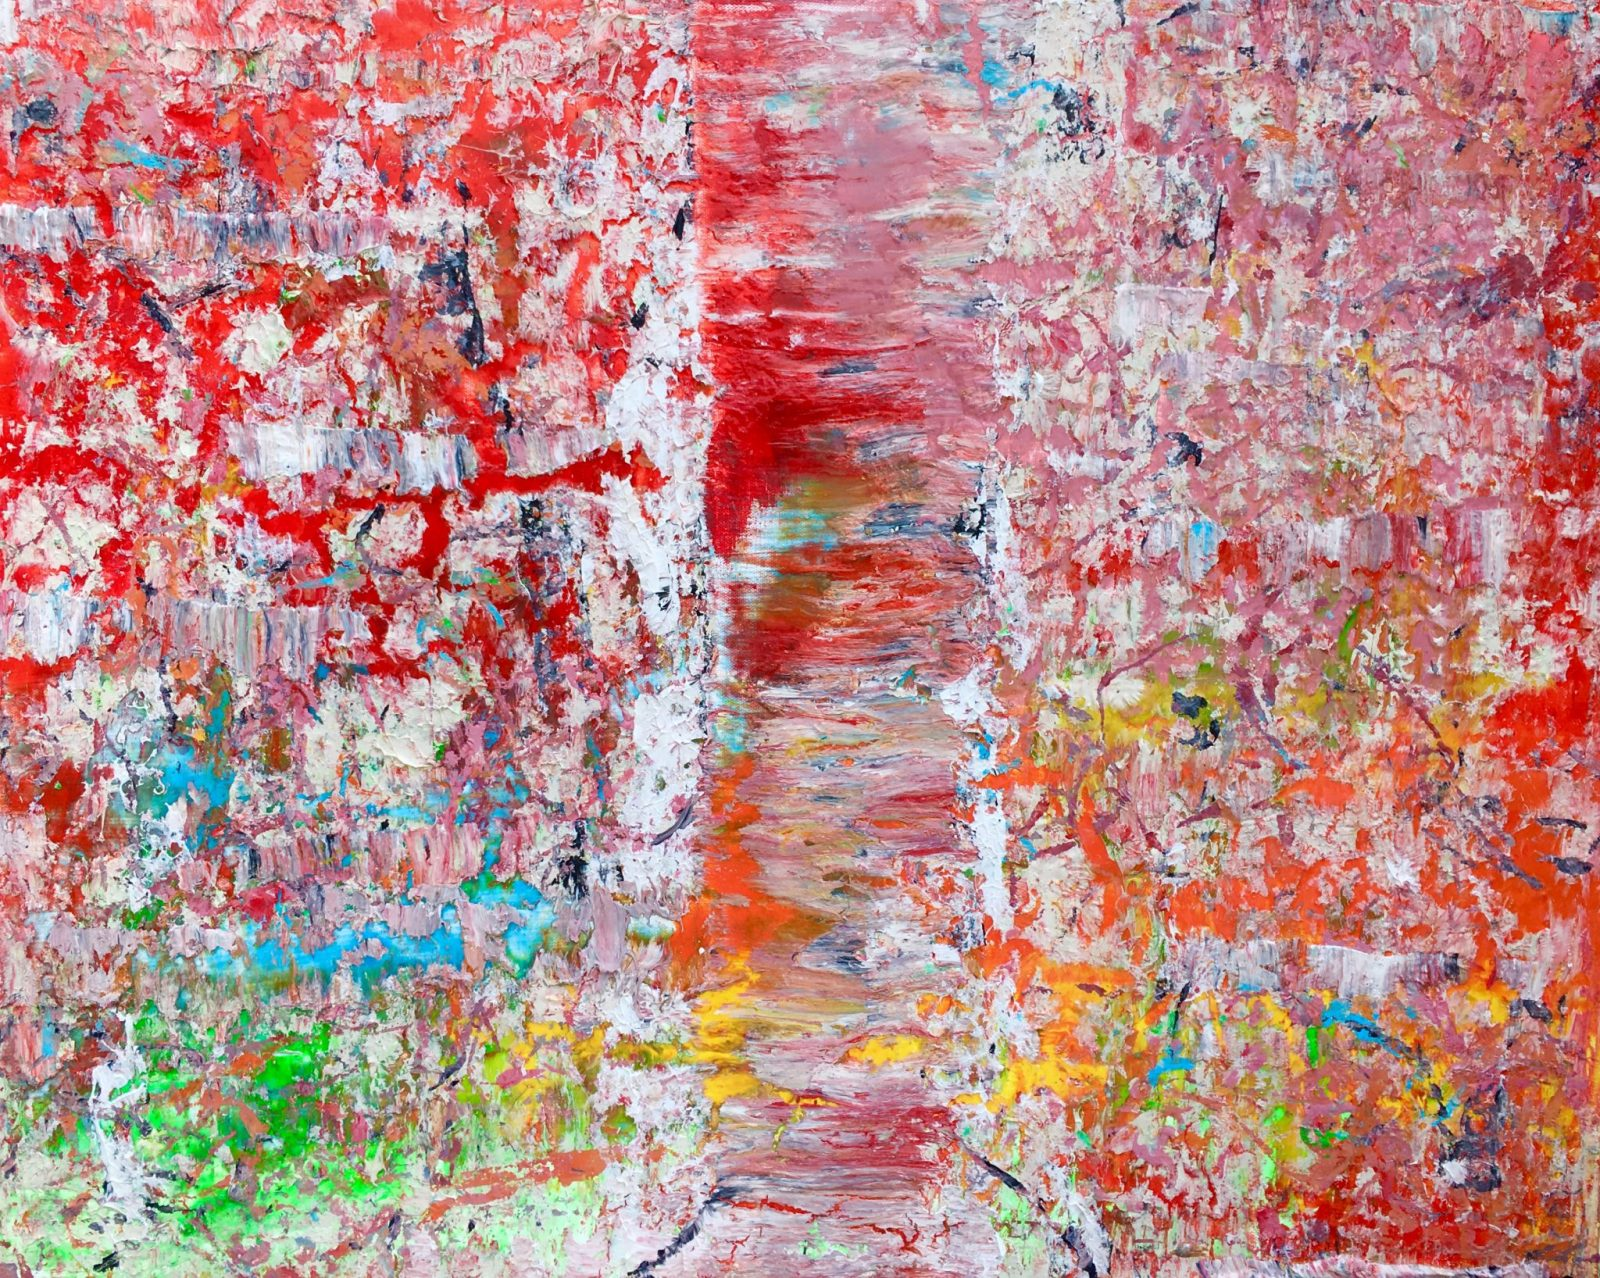 Abstract Painting by Rebecca Pacun